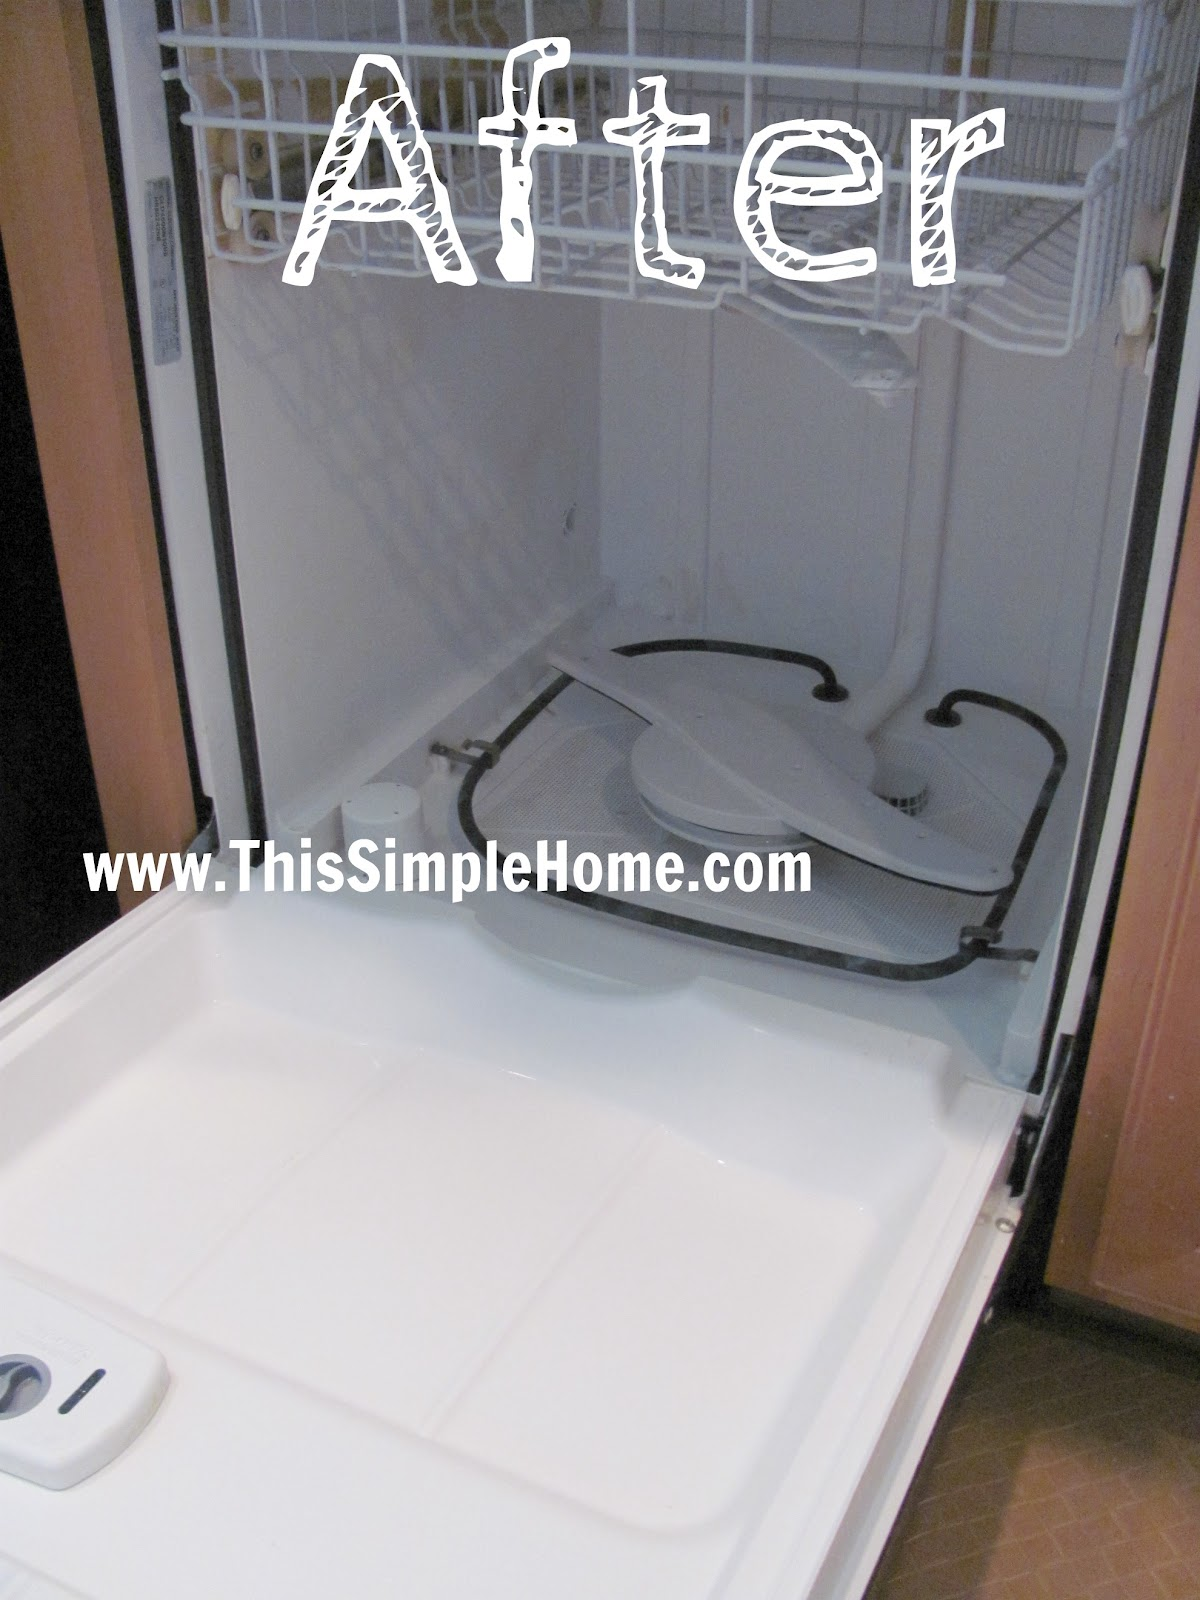 How Do I Clean My Dishwasher This Simple Home How To Clean Brown Stains In Dishwasher